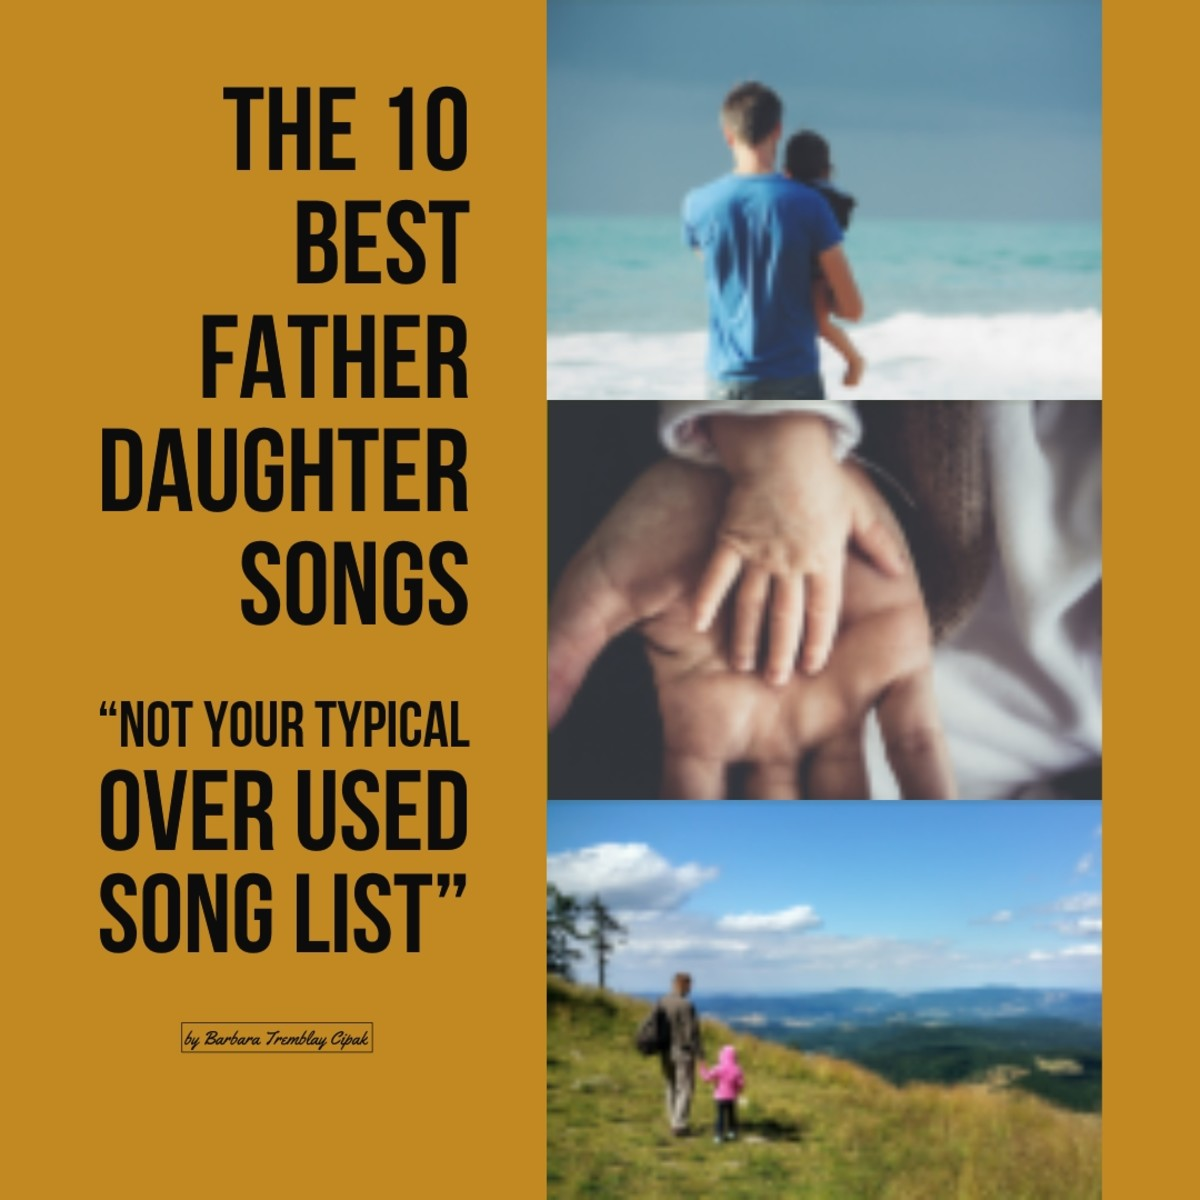 The 10 Best Father Daughter Songs that aren't found on your typical song list